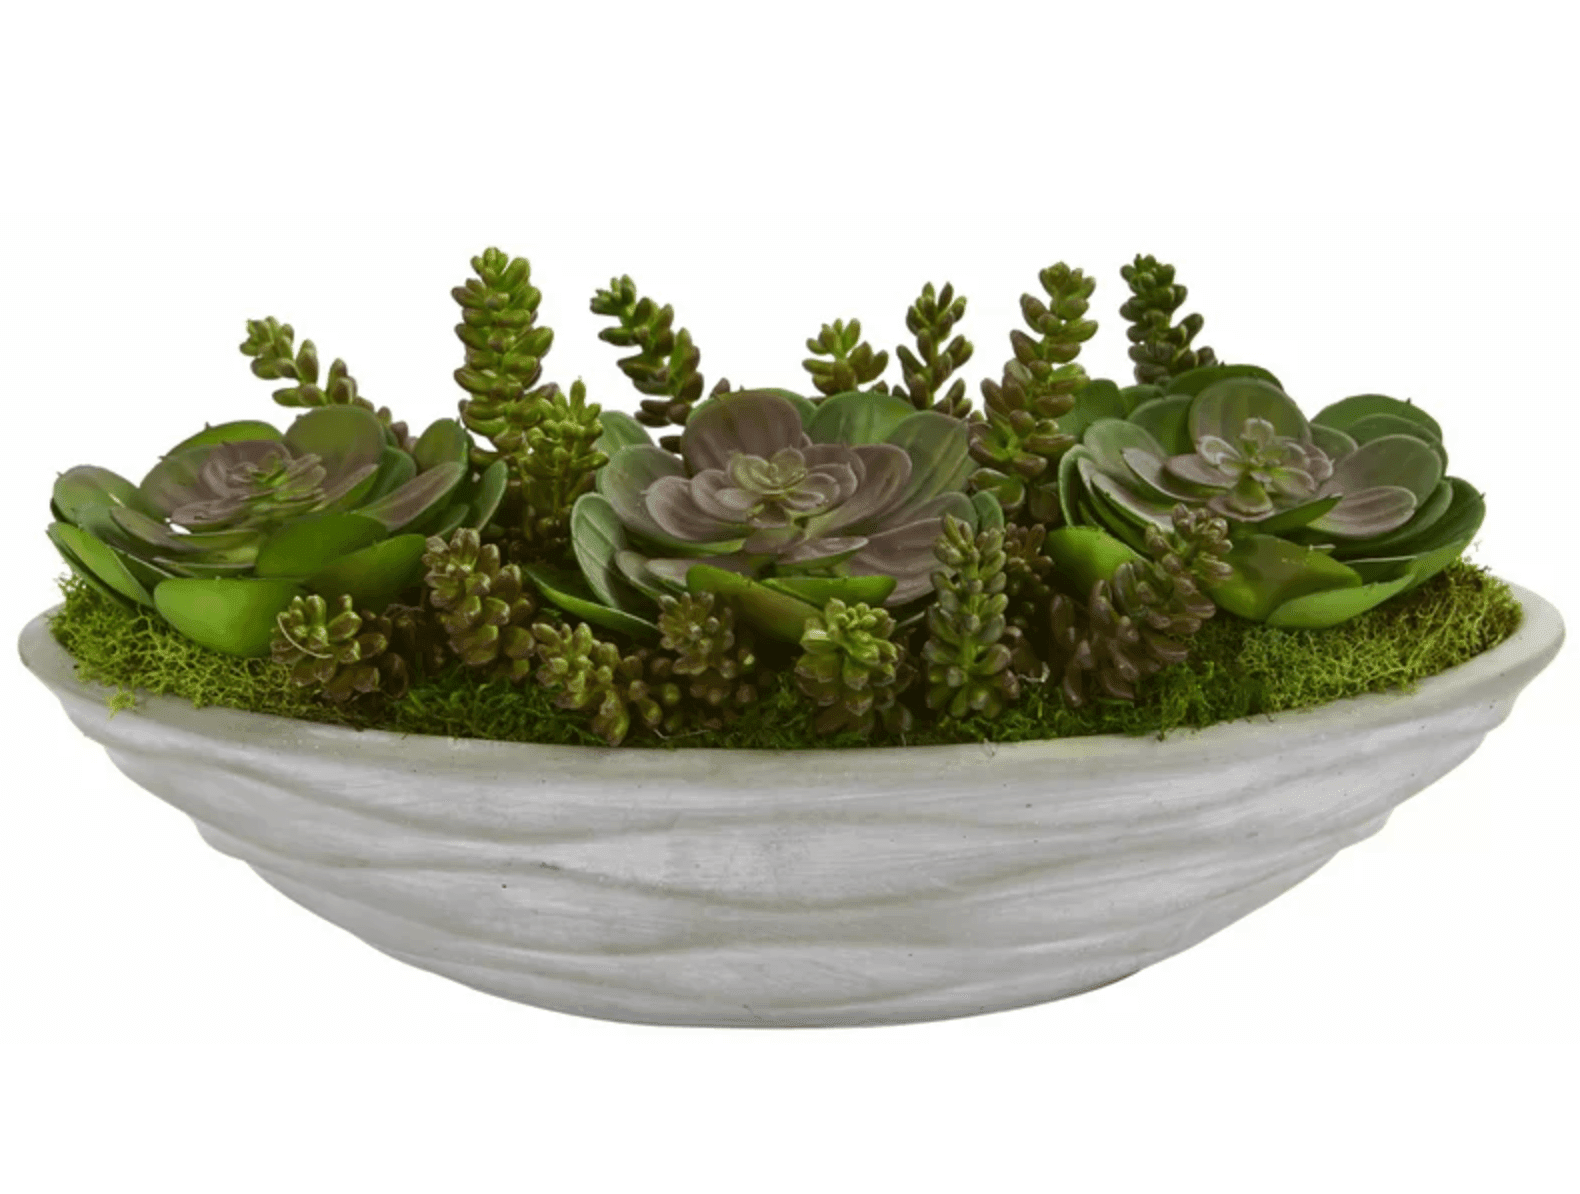 Bowl of fake succulents